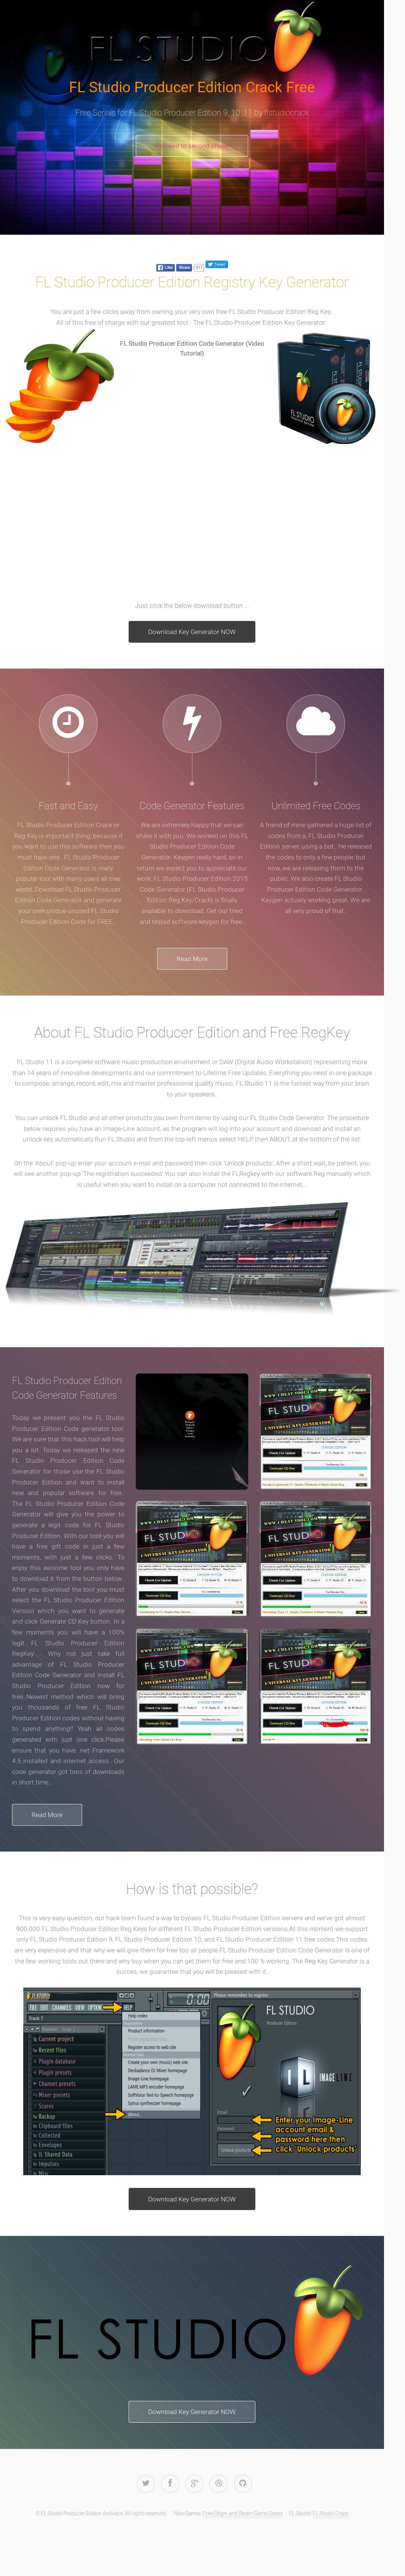 How to get fl studio 10 producer edition for free | FL Studio